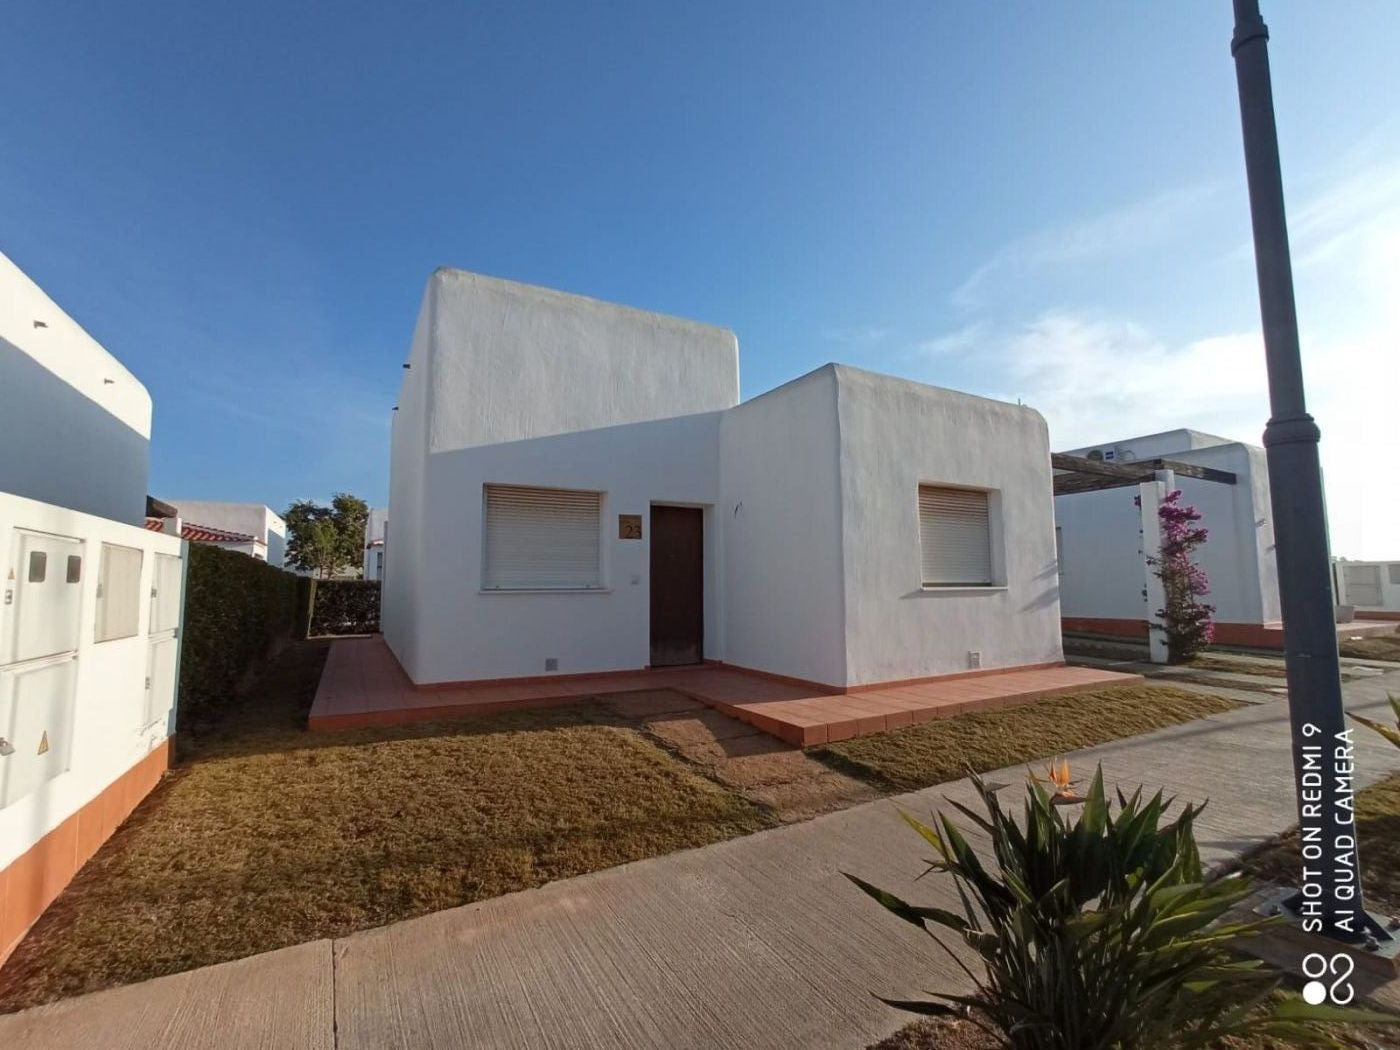 Gallery Image 3 of Villa Jana in need of some TLC for sale at bargain price